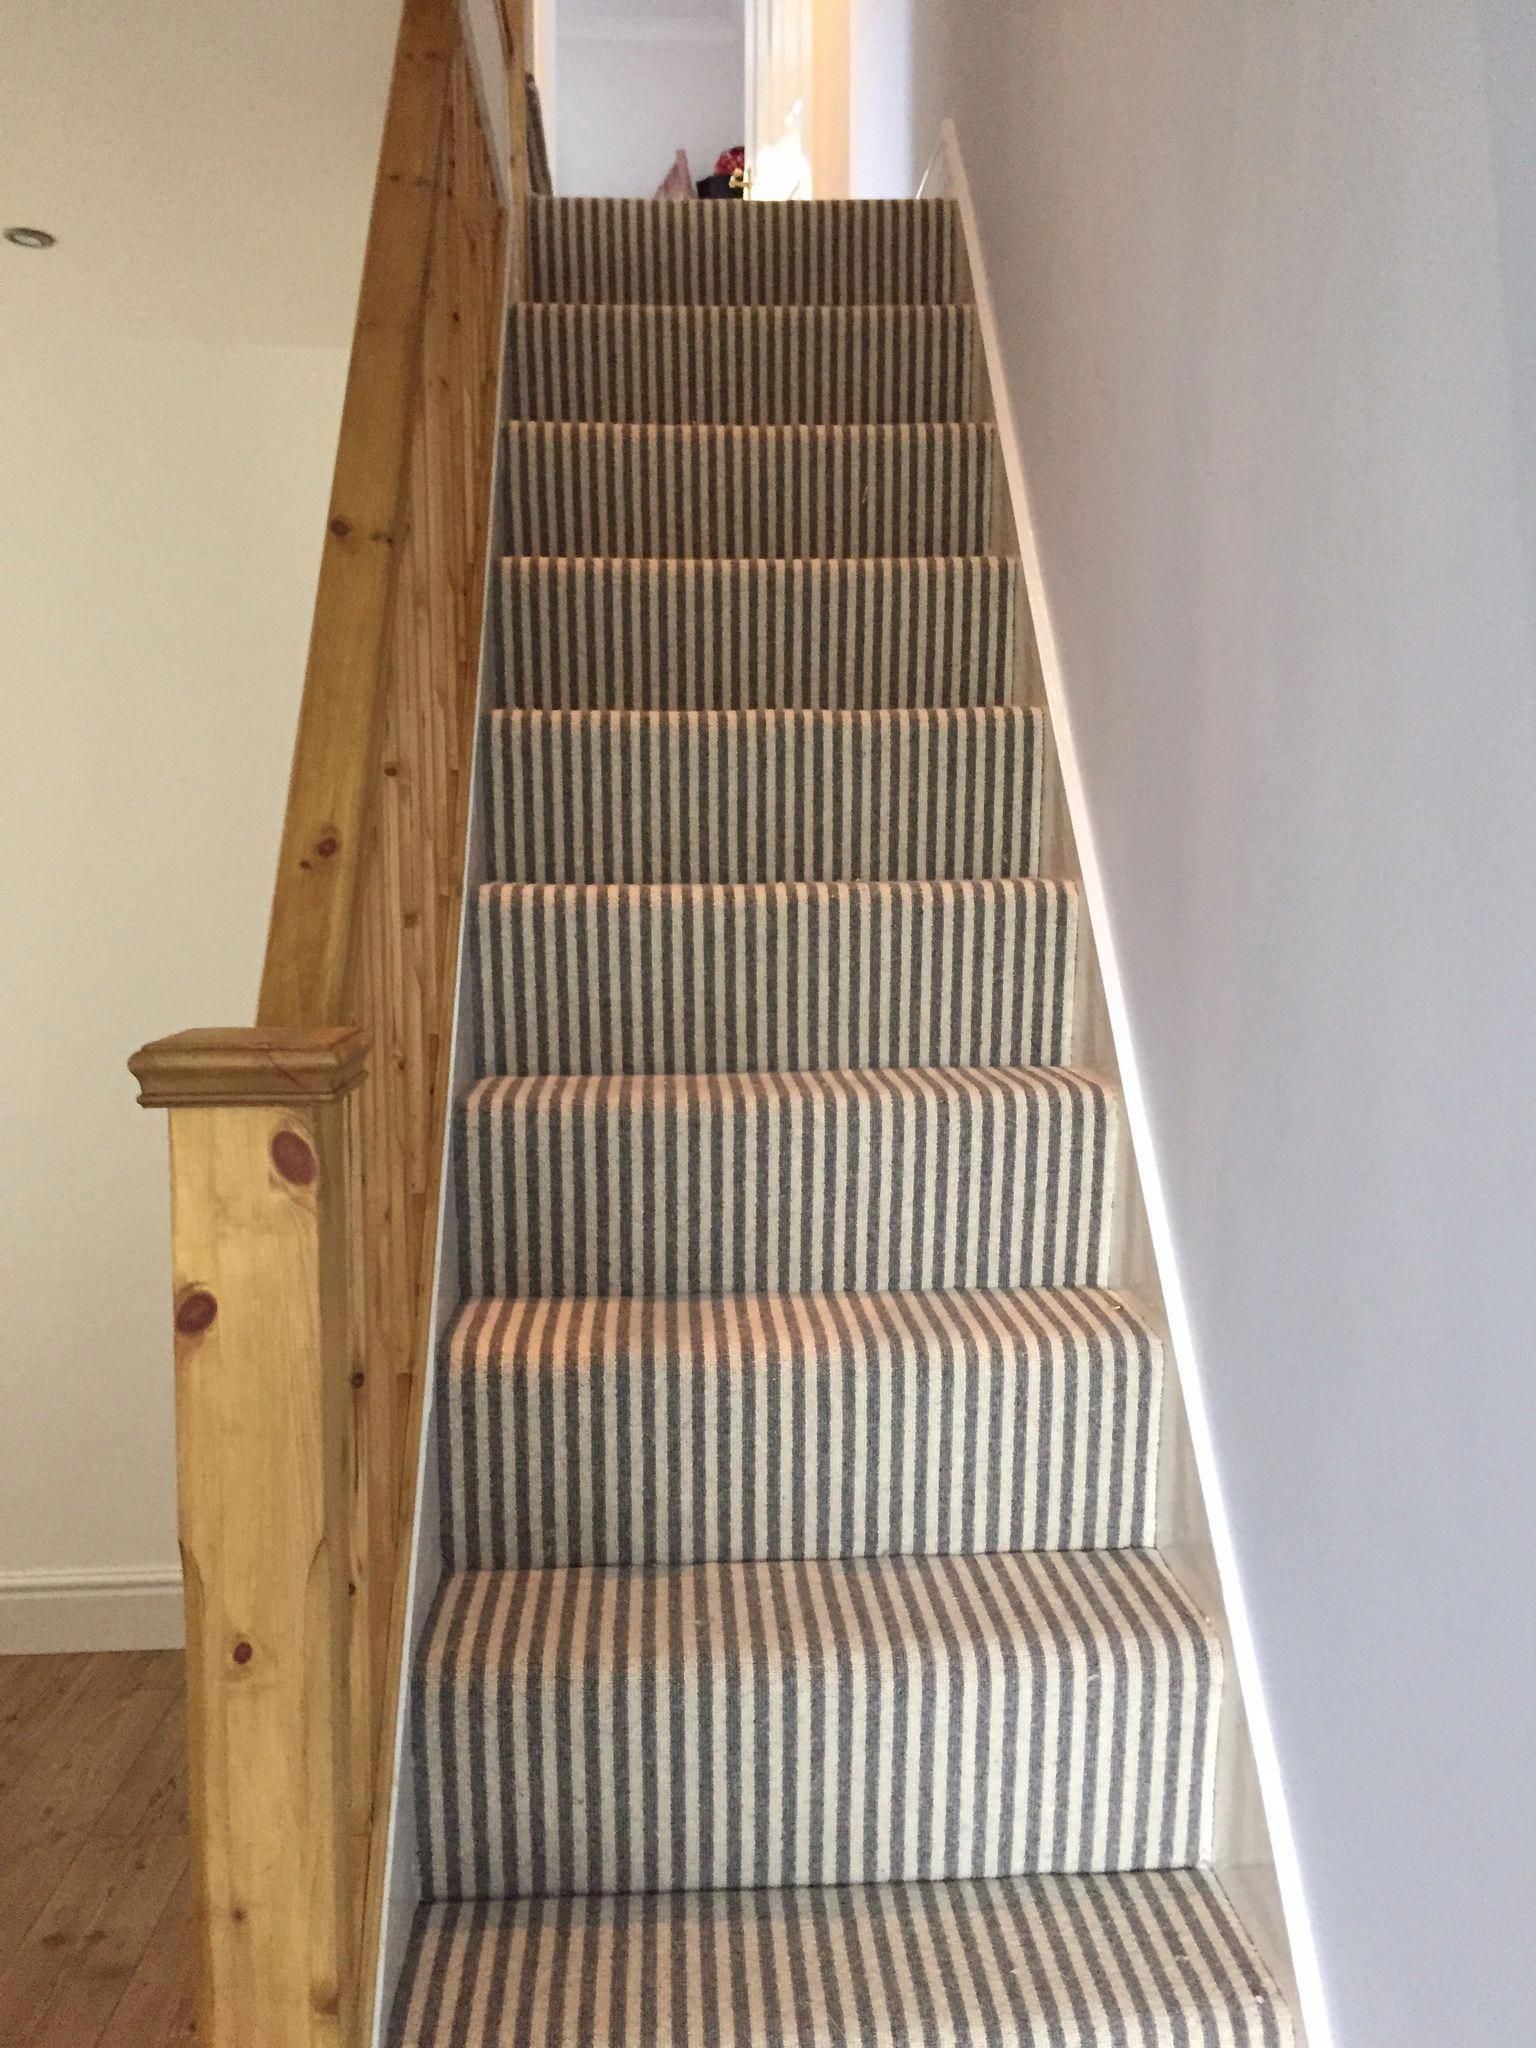 Newest No Cost Striped Carpet Stairs Style One Of The Fastest Approaches To Reva Newest No Cost Striped In 2020 Carpet Stairs Striped Carpets Striped Carpet Stairs